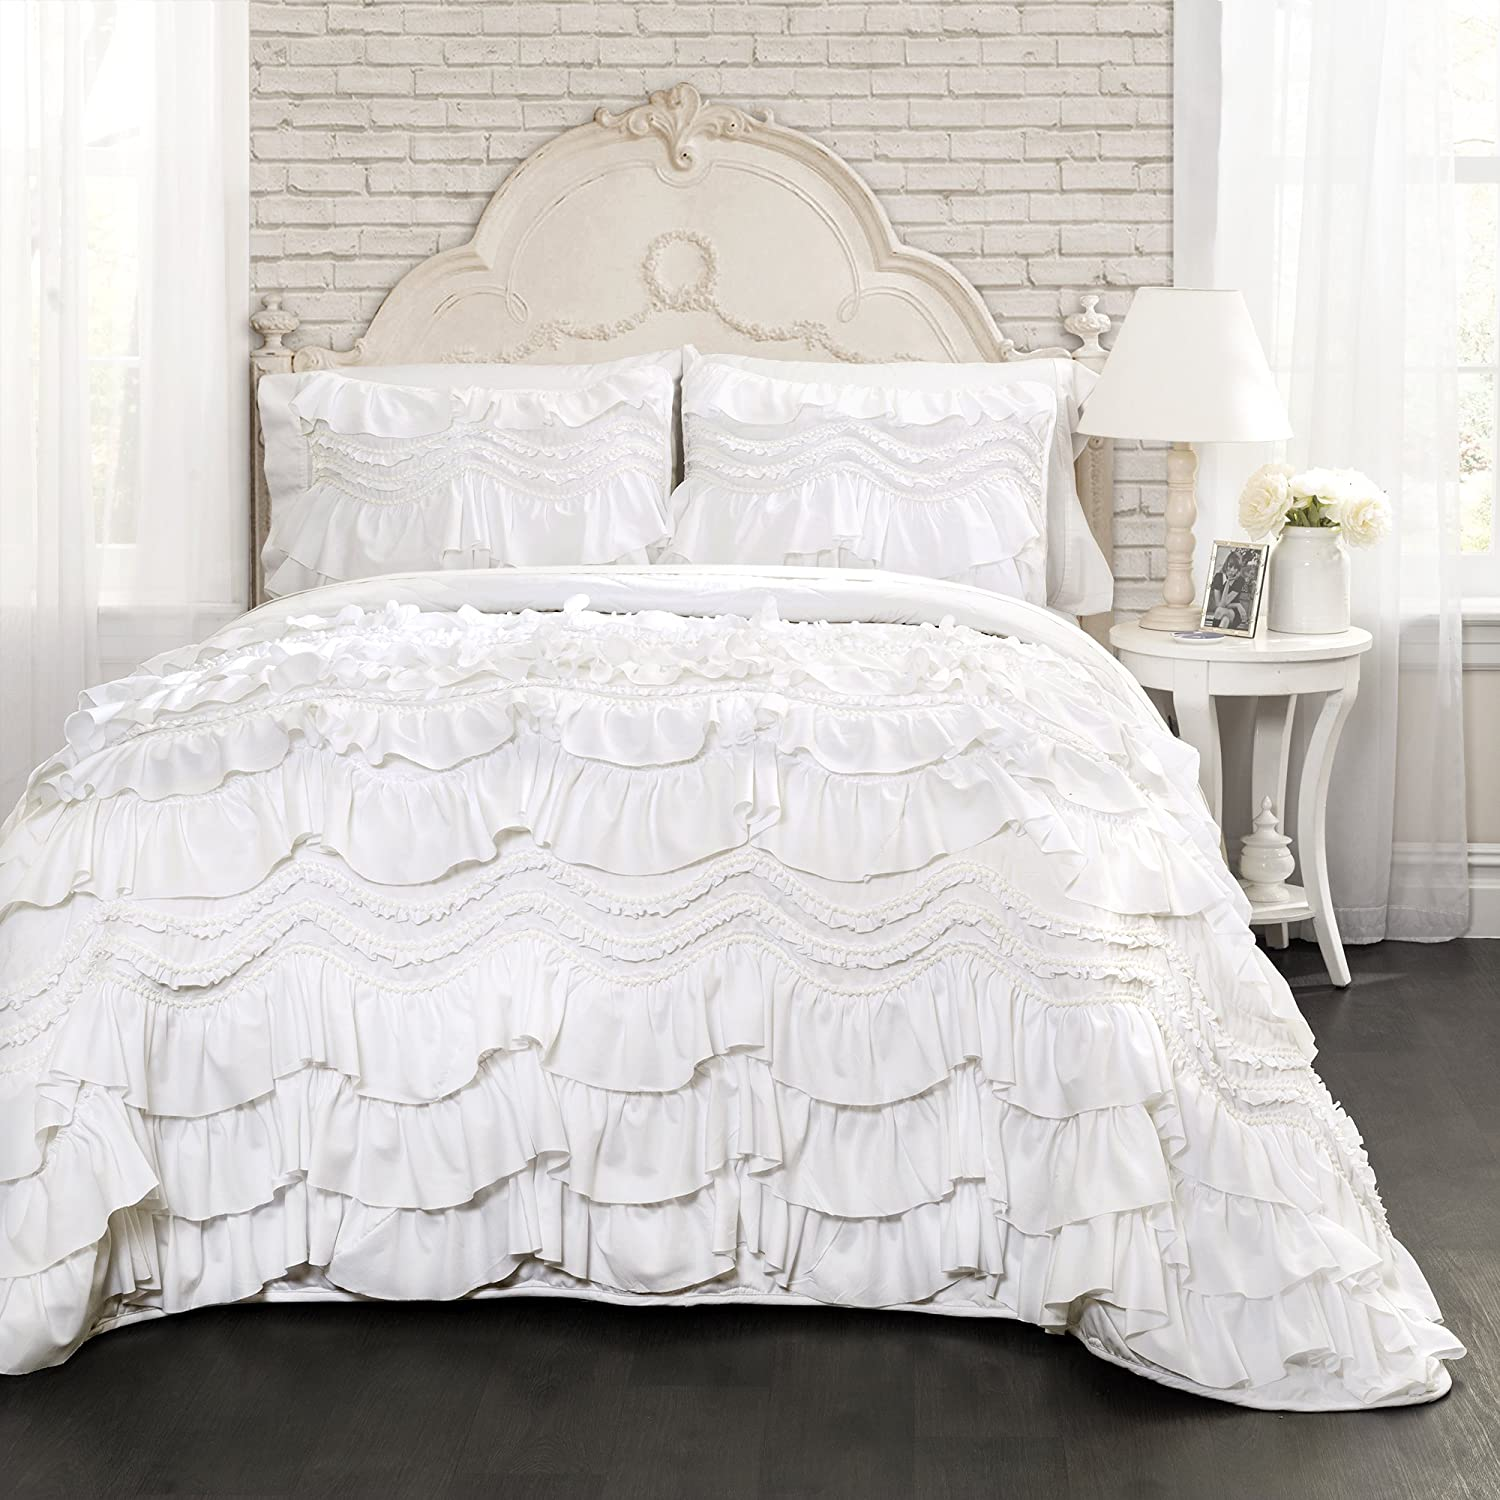 Lush Decor Kemmy Quilt Ruffled Textured 2 Piece Twin Size Bedding Set, White